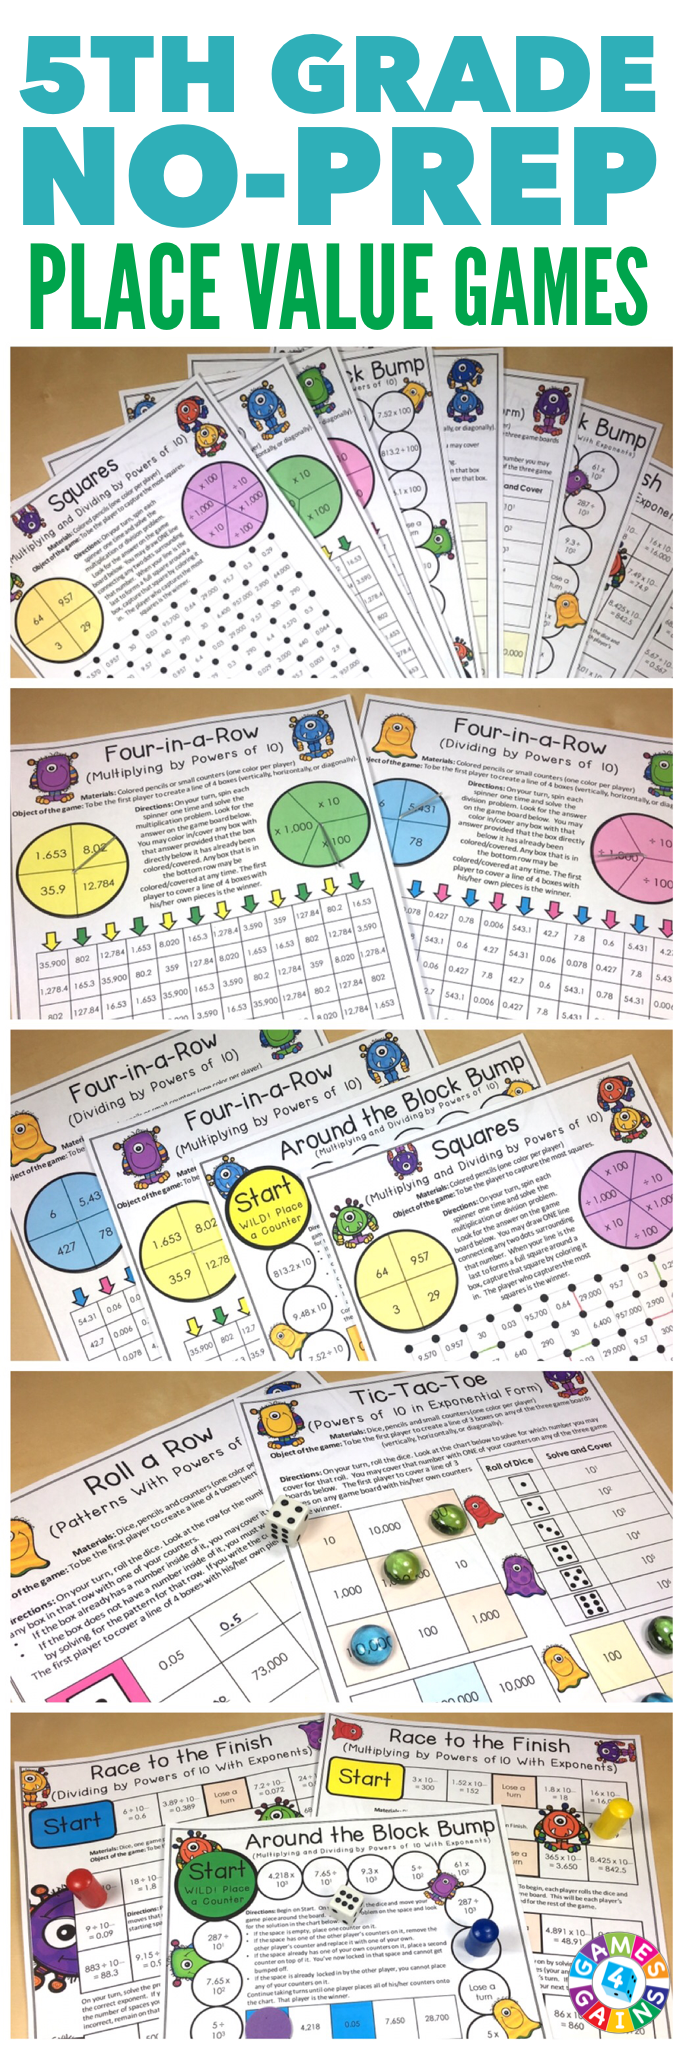 Nifty image in 5th grade printable math games